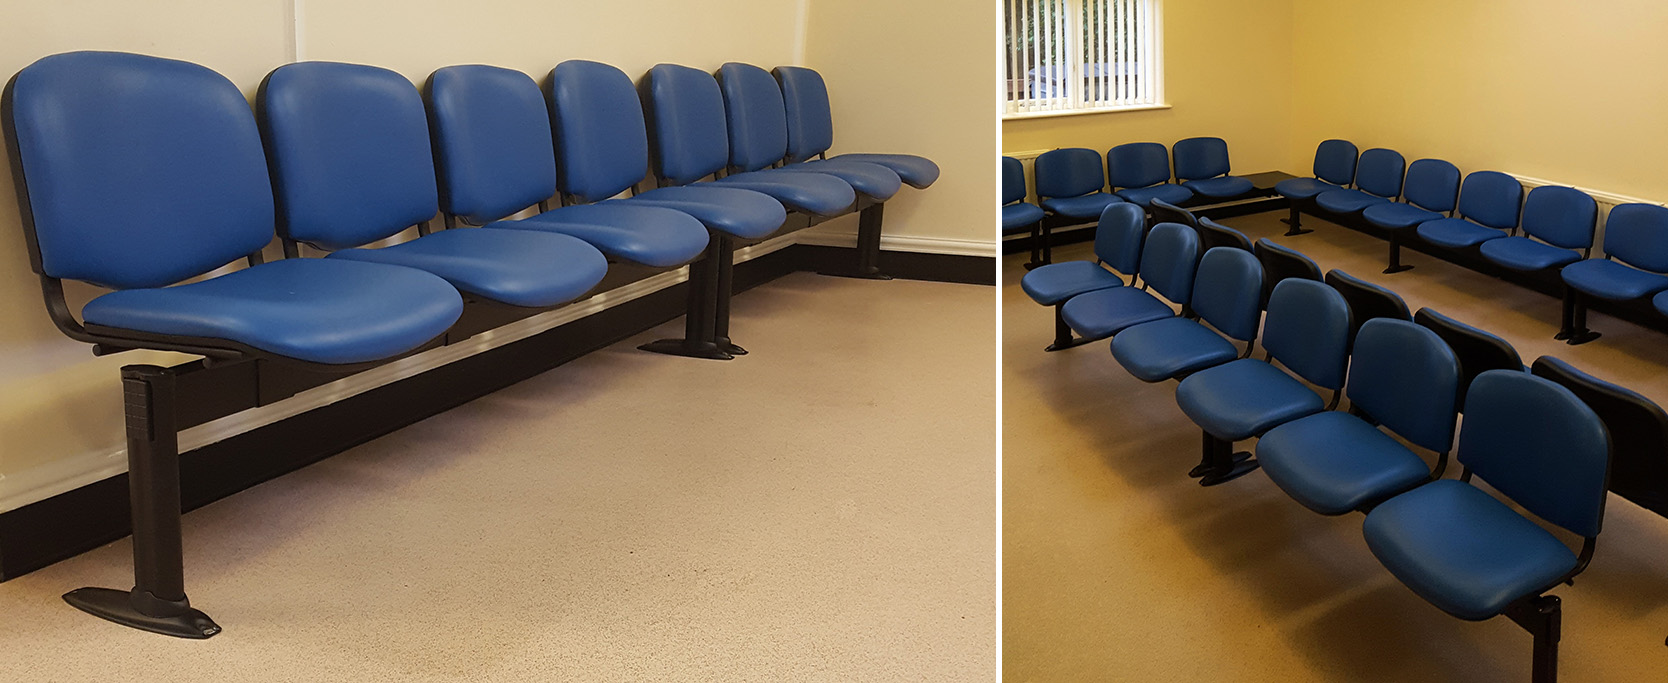 Doctors waiting room with rows of beam seating waiting room chairs upholstered in blue vinyl